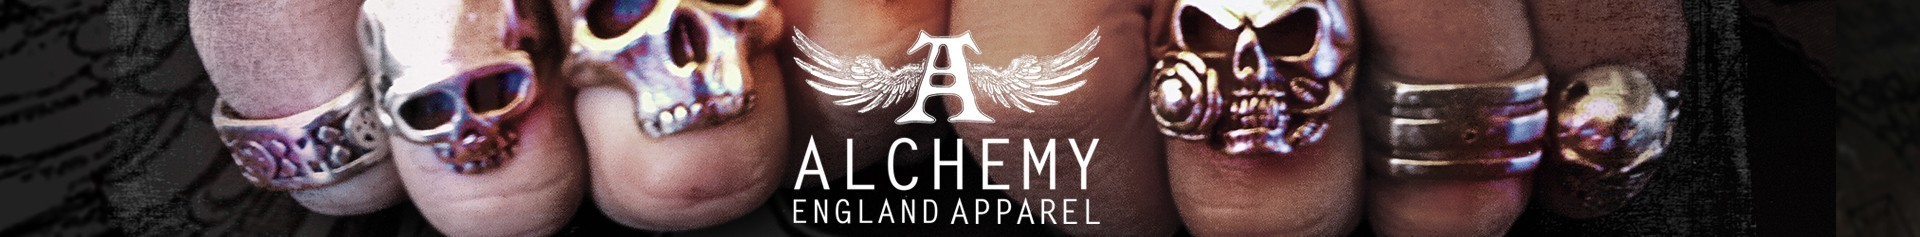 alchemy england apparel collection